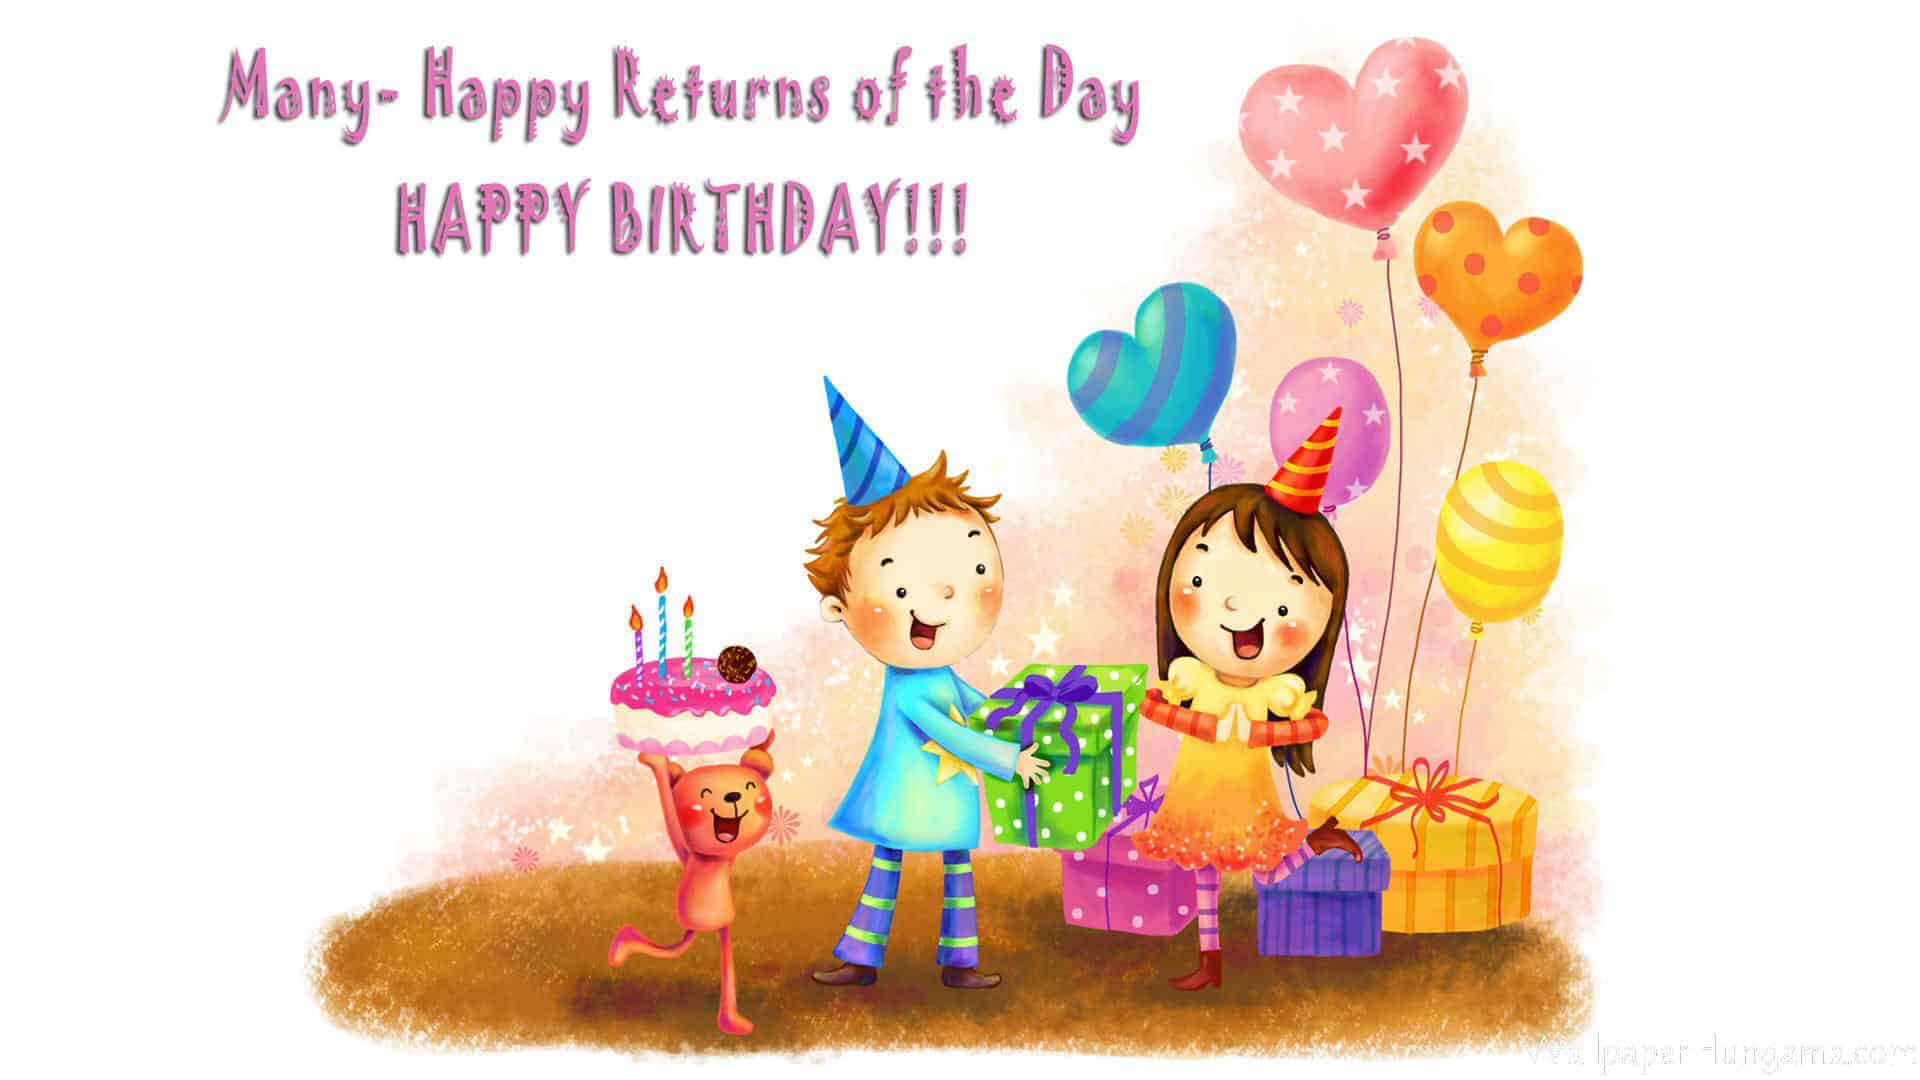 Exclusive Happy Birthday Wishes Messages With High Quality Wish Images